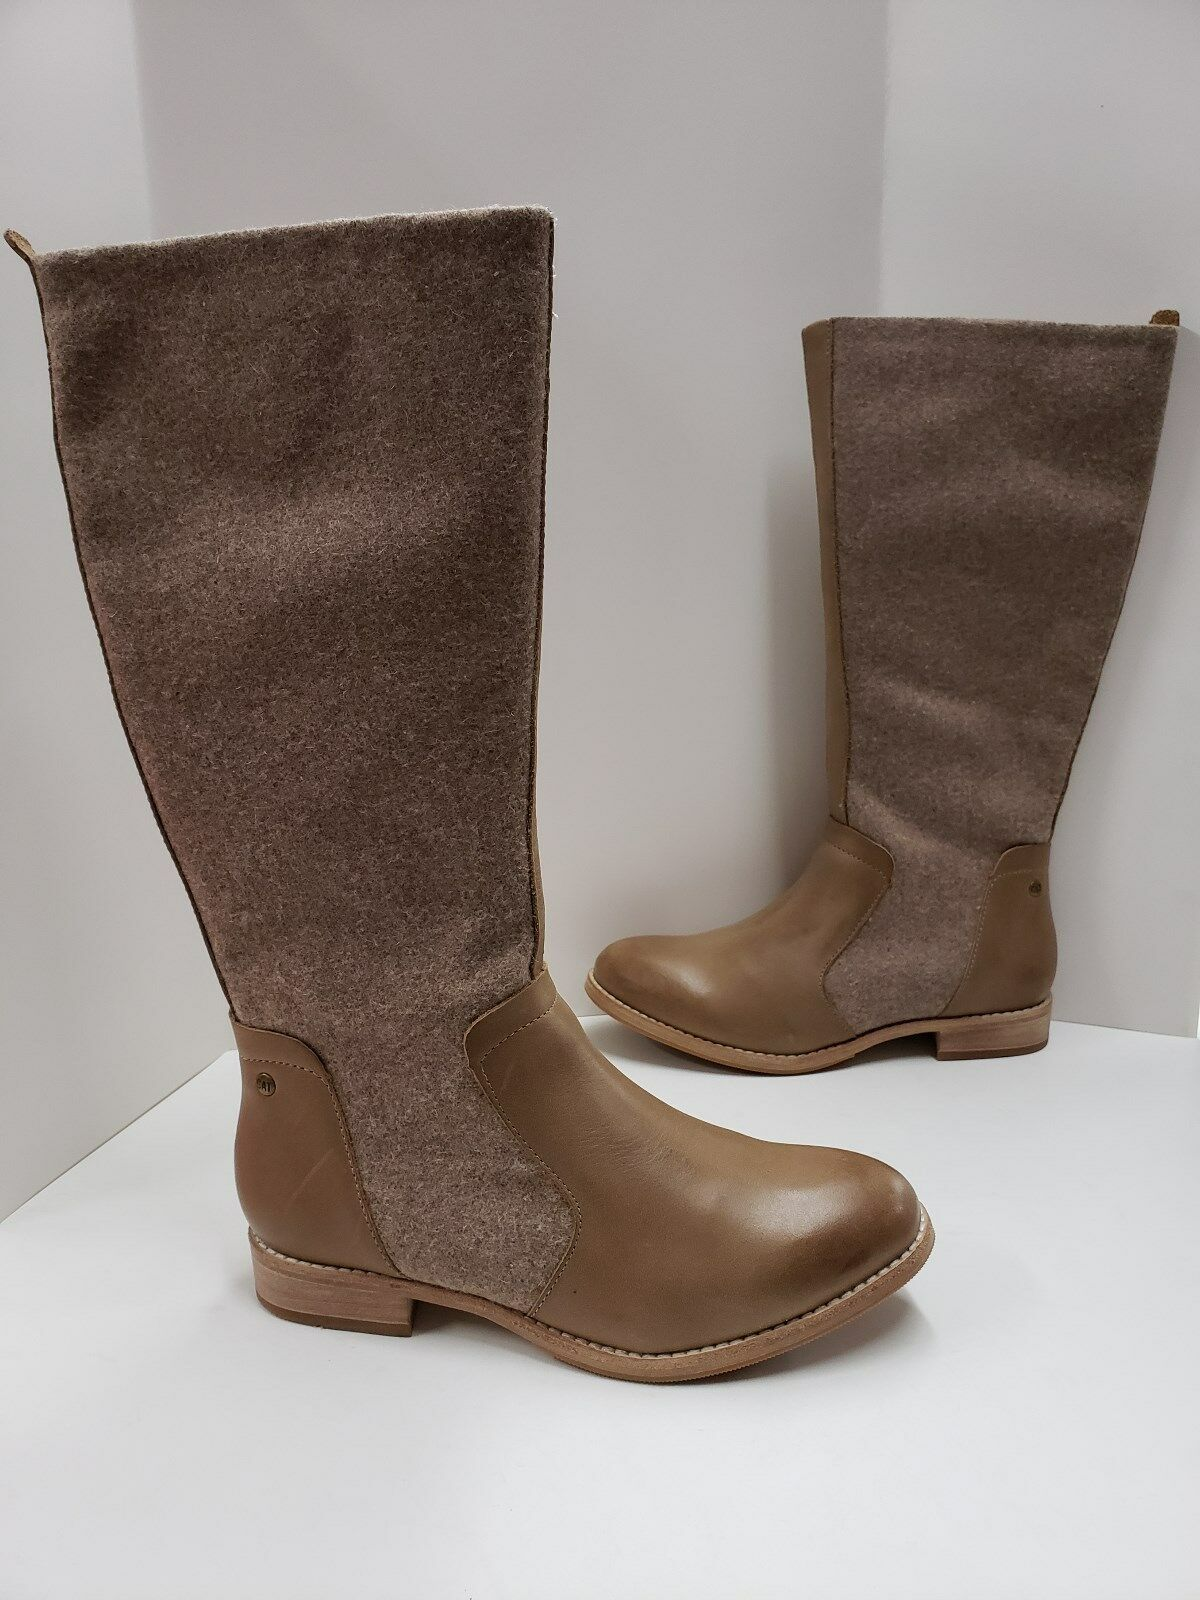 NIB Womens Caterpillar Ceil Tan Leather and Wool Riding Boots P310508